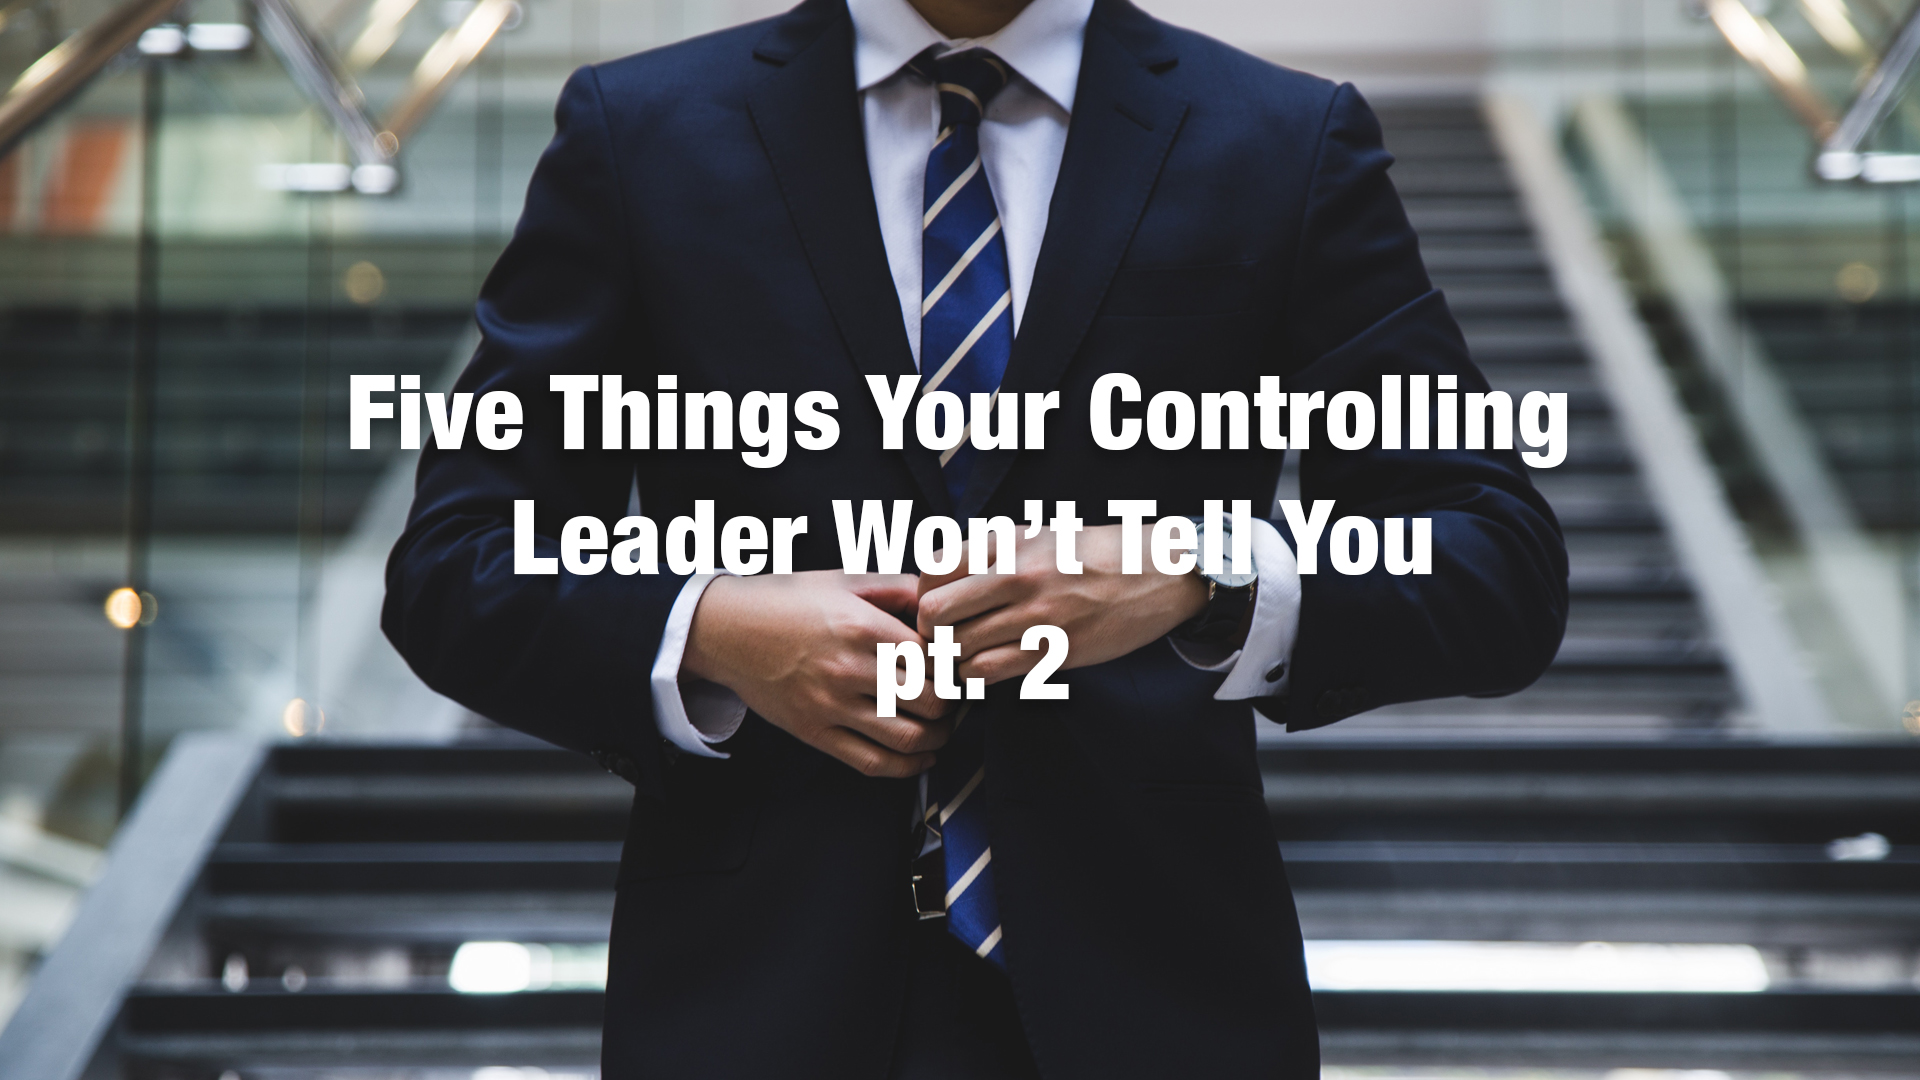 5 Things Your Controlling  Leader pt2 1920x1080.jpg